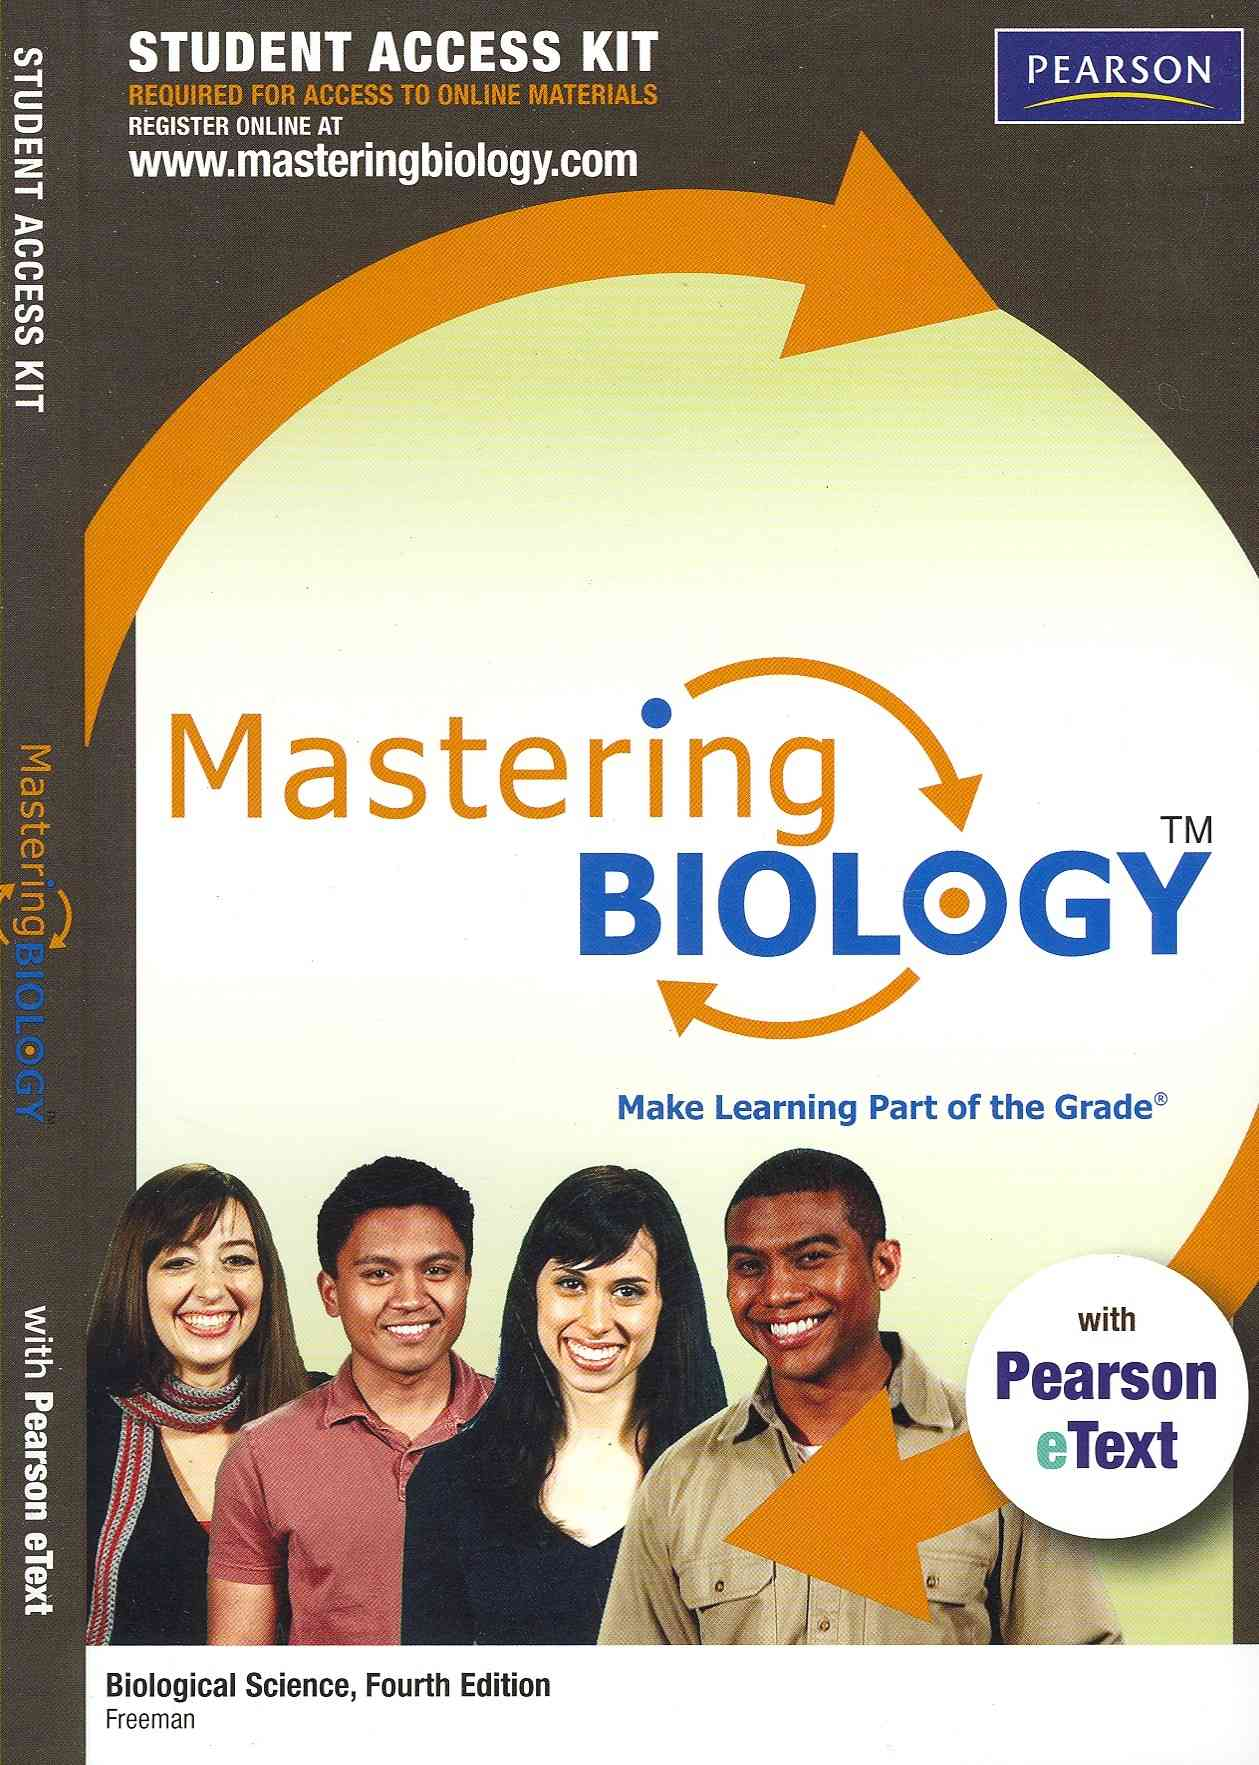 Benjamin-Cummings Publishing Company Masteringbiology with Pearson Etext Student Access Kit for Biological Science (4th Edition) by Freeman, Scott [Hardcover] at Sears.com